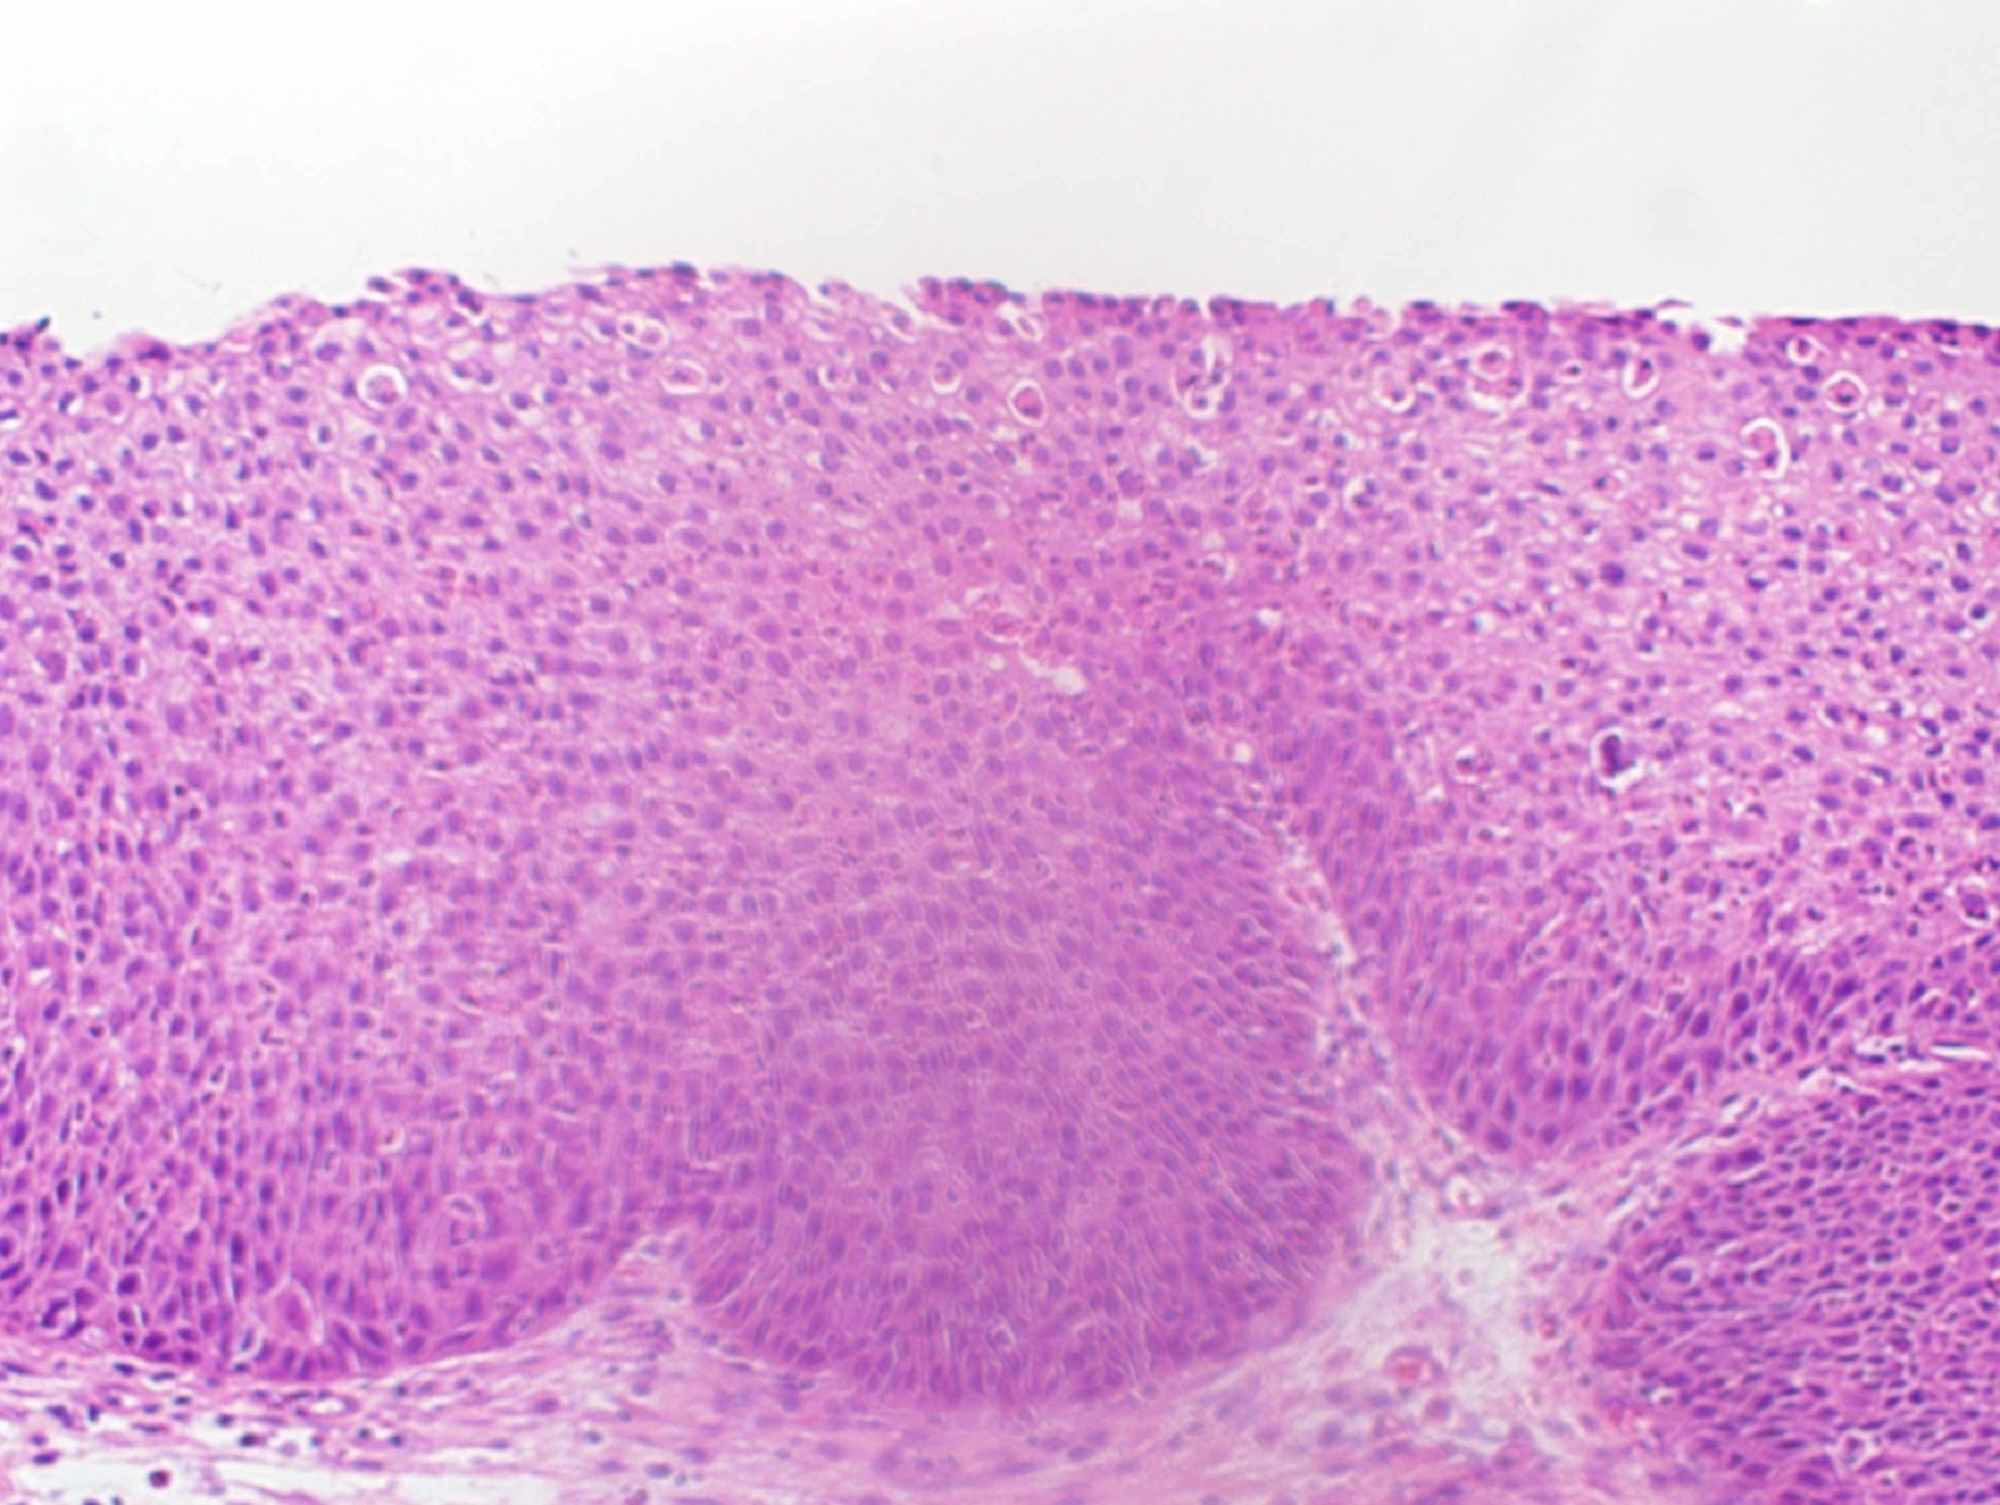 inverted papilloma with squamous cell carcinoma papilloma in duct of breast